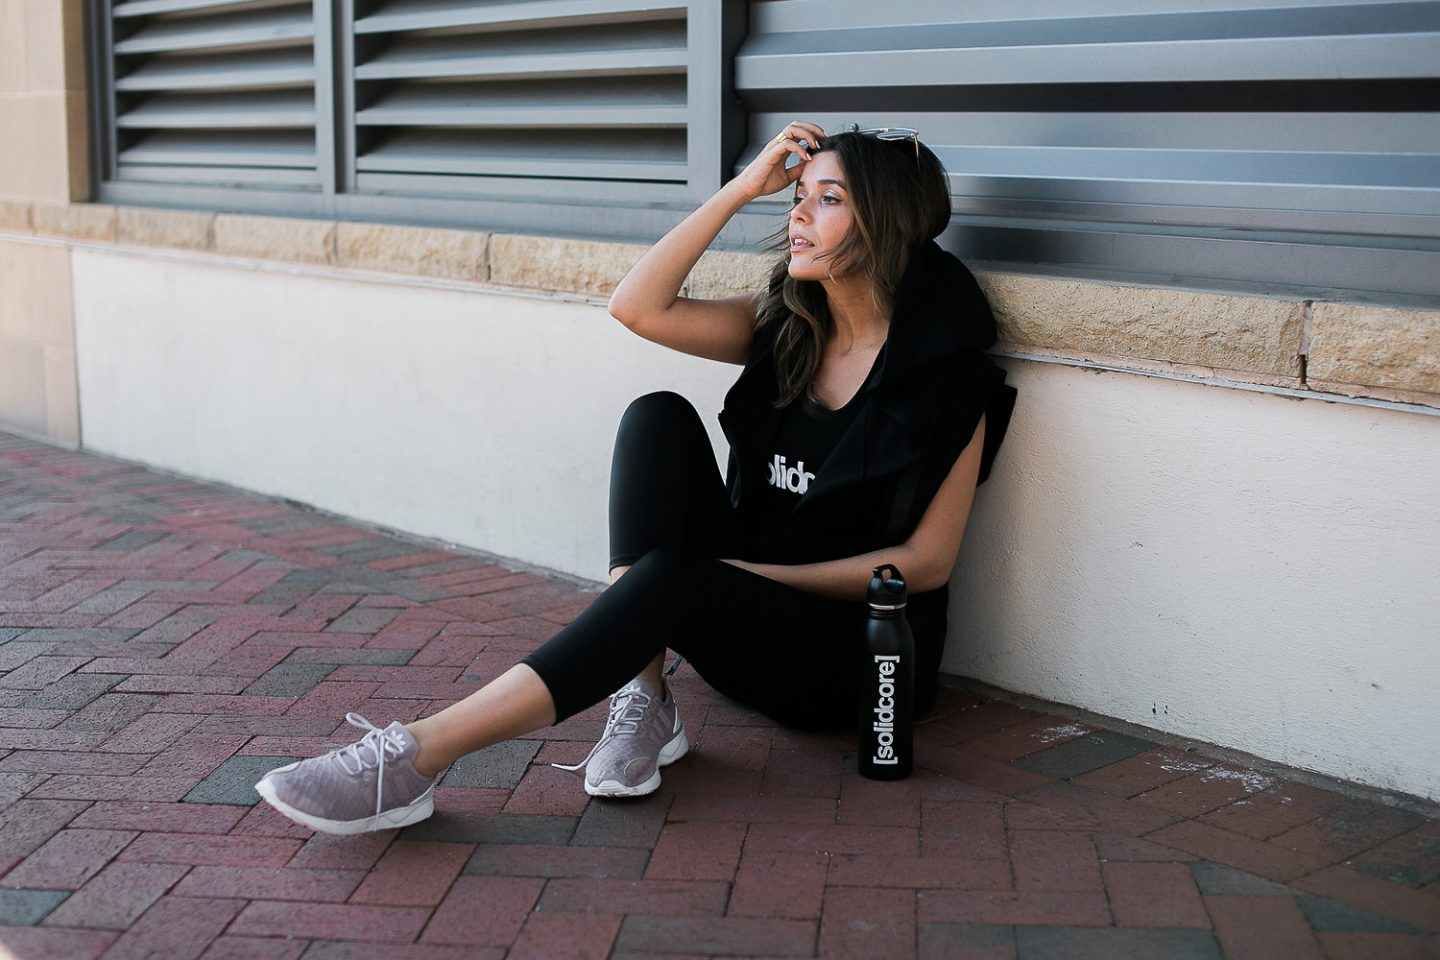 [solidcore] Fitness + Discount Code!